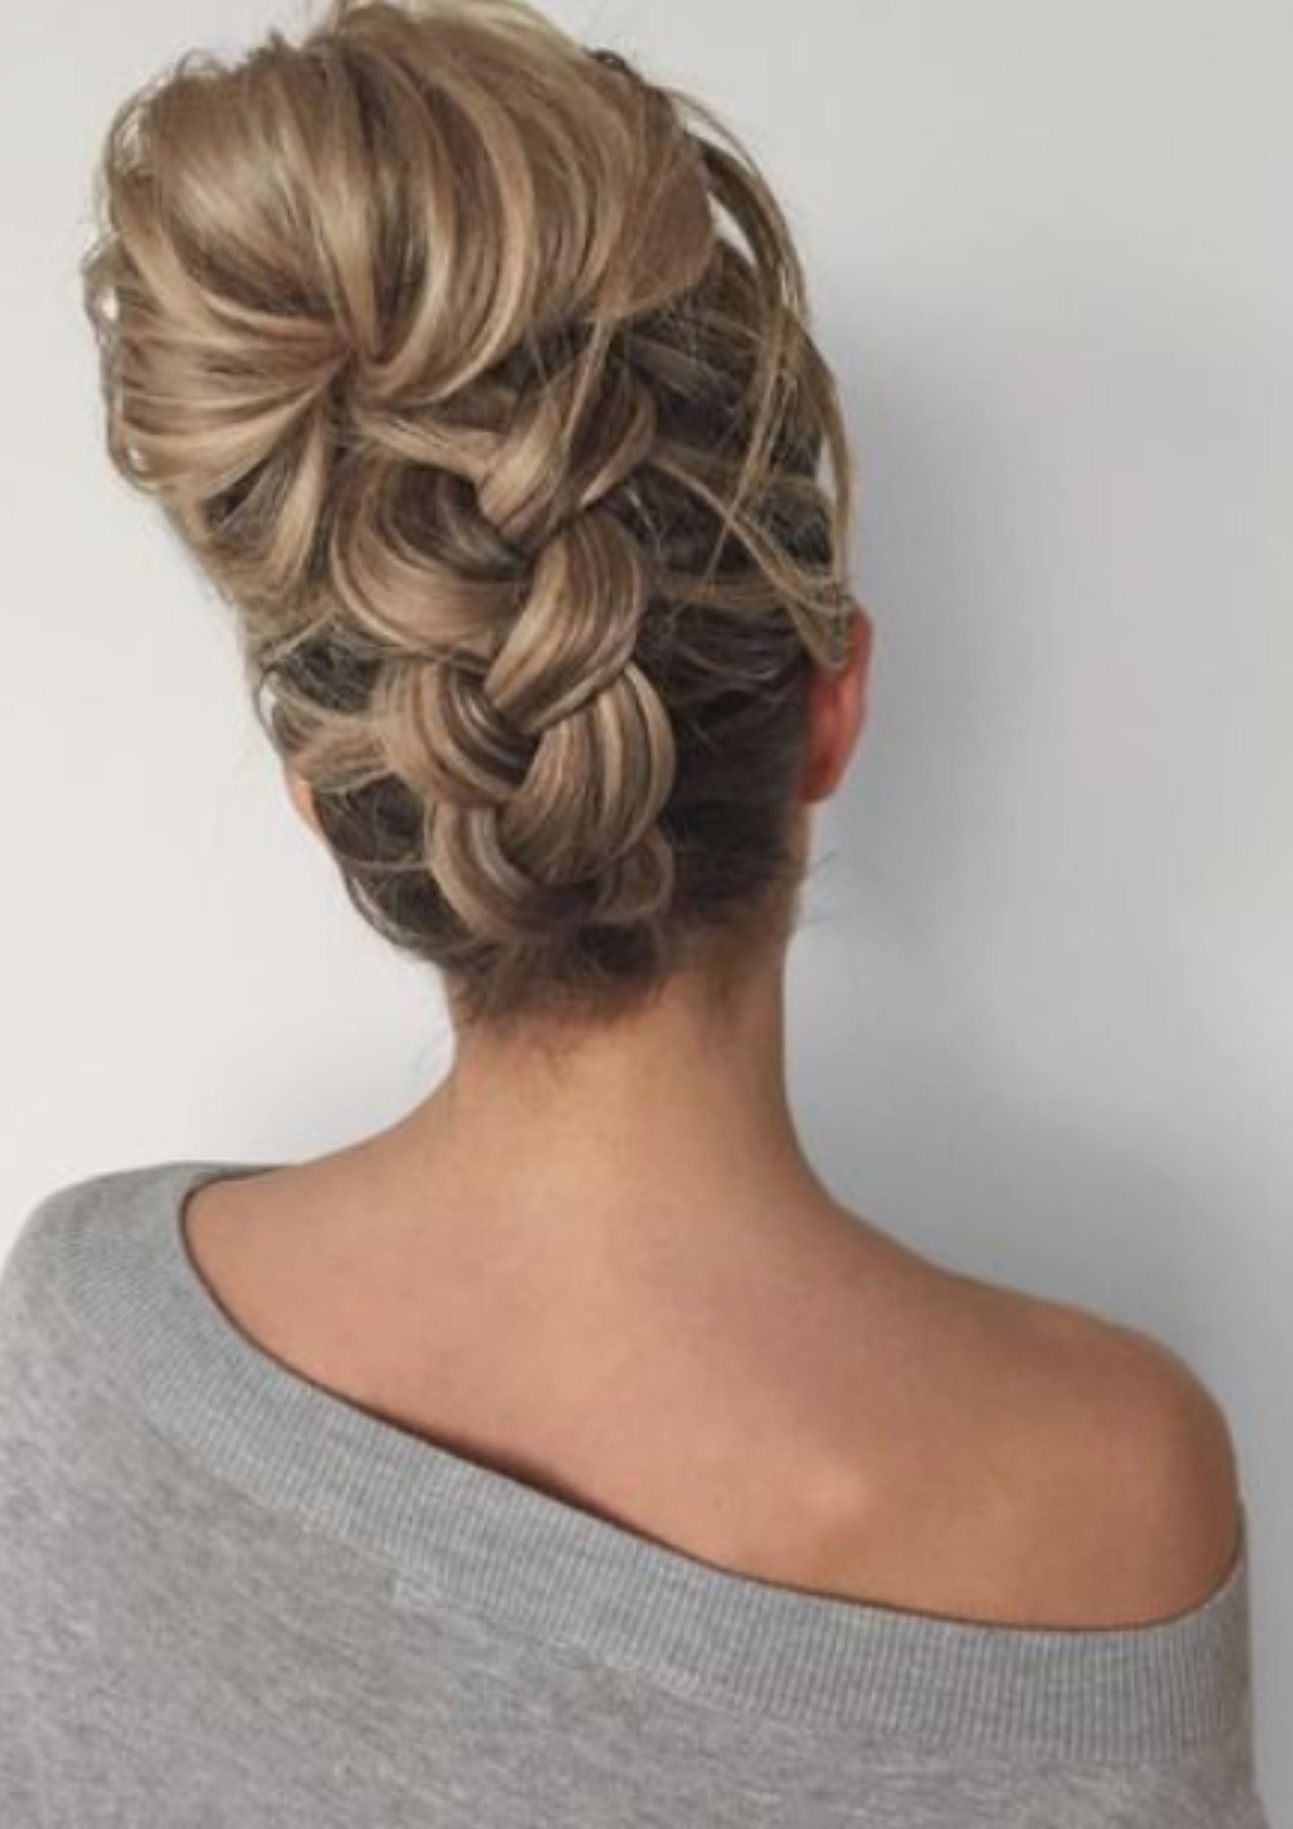 Pin by sherri tyler on makeuphairnailsuc pinterest hair